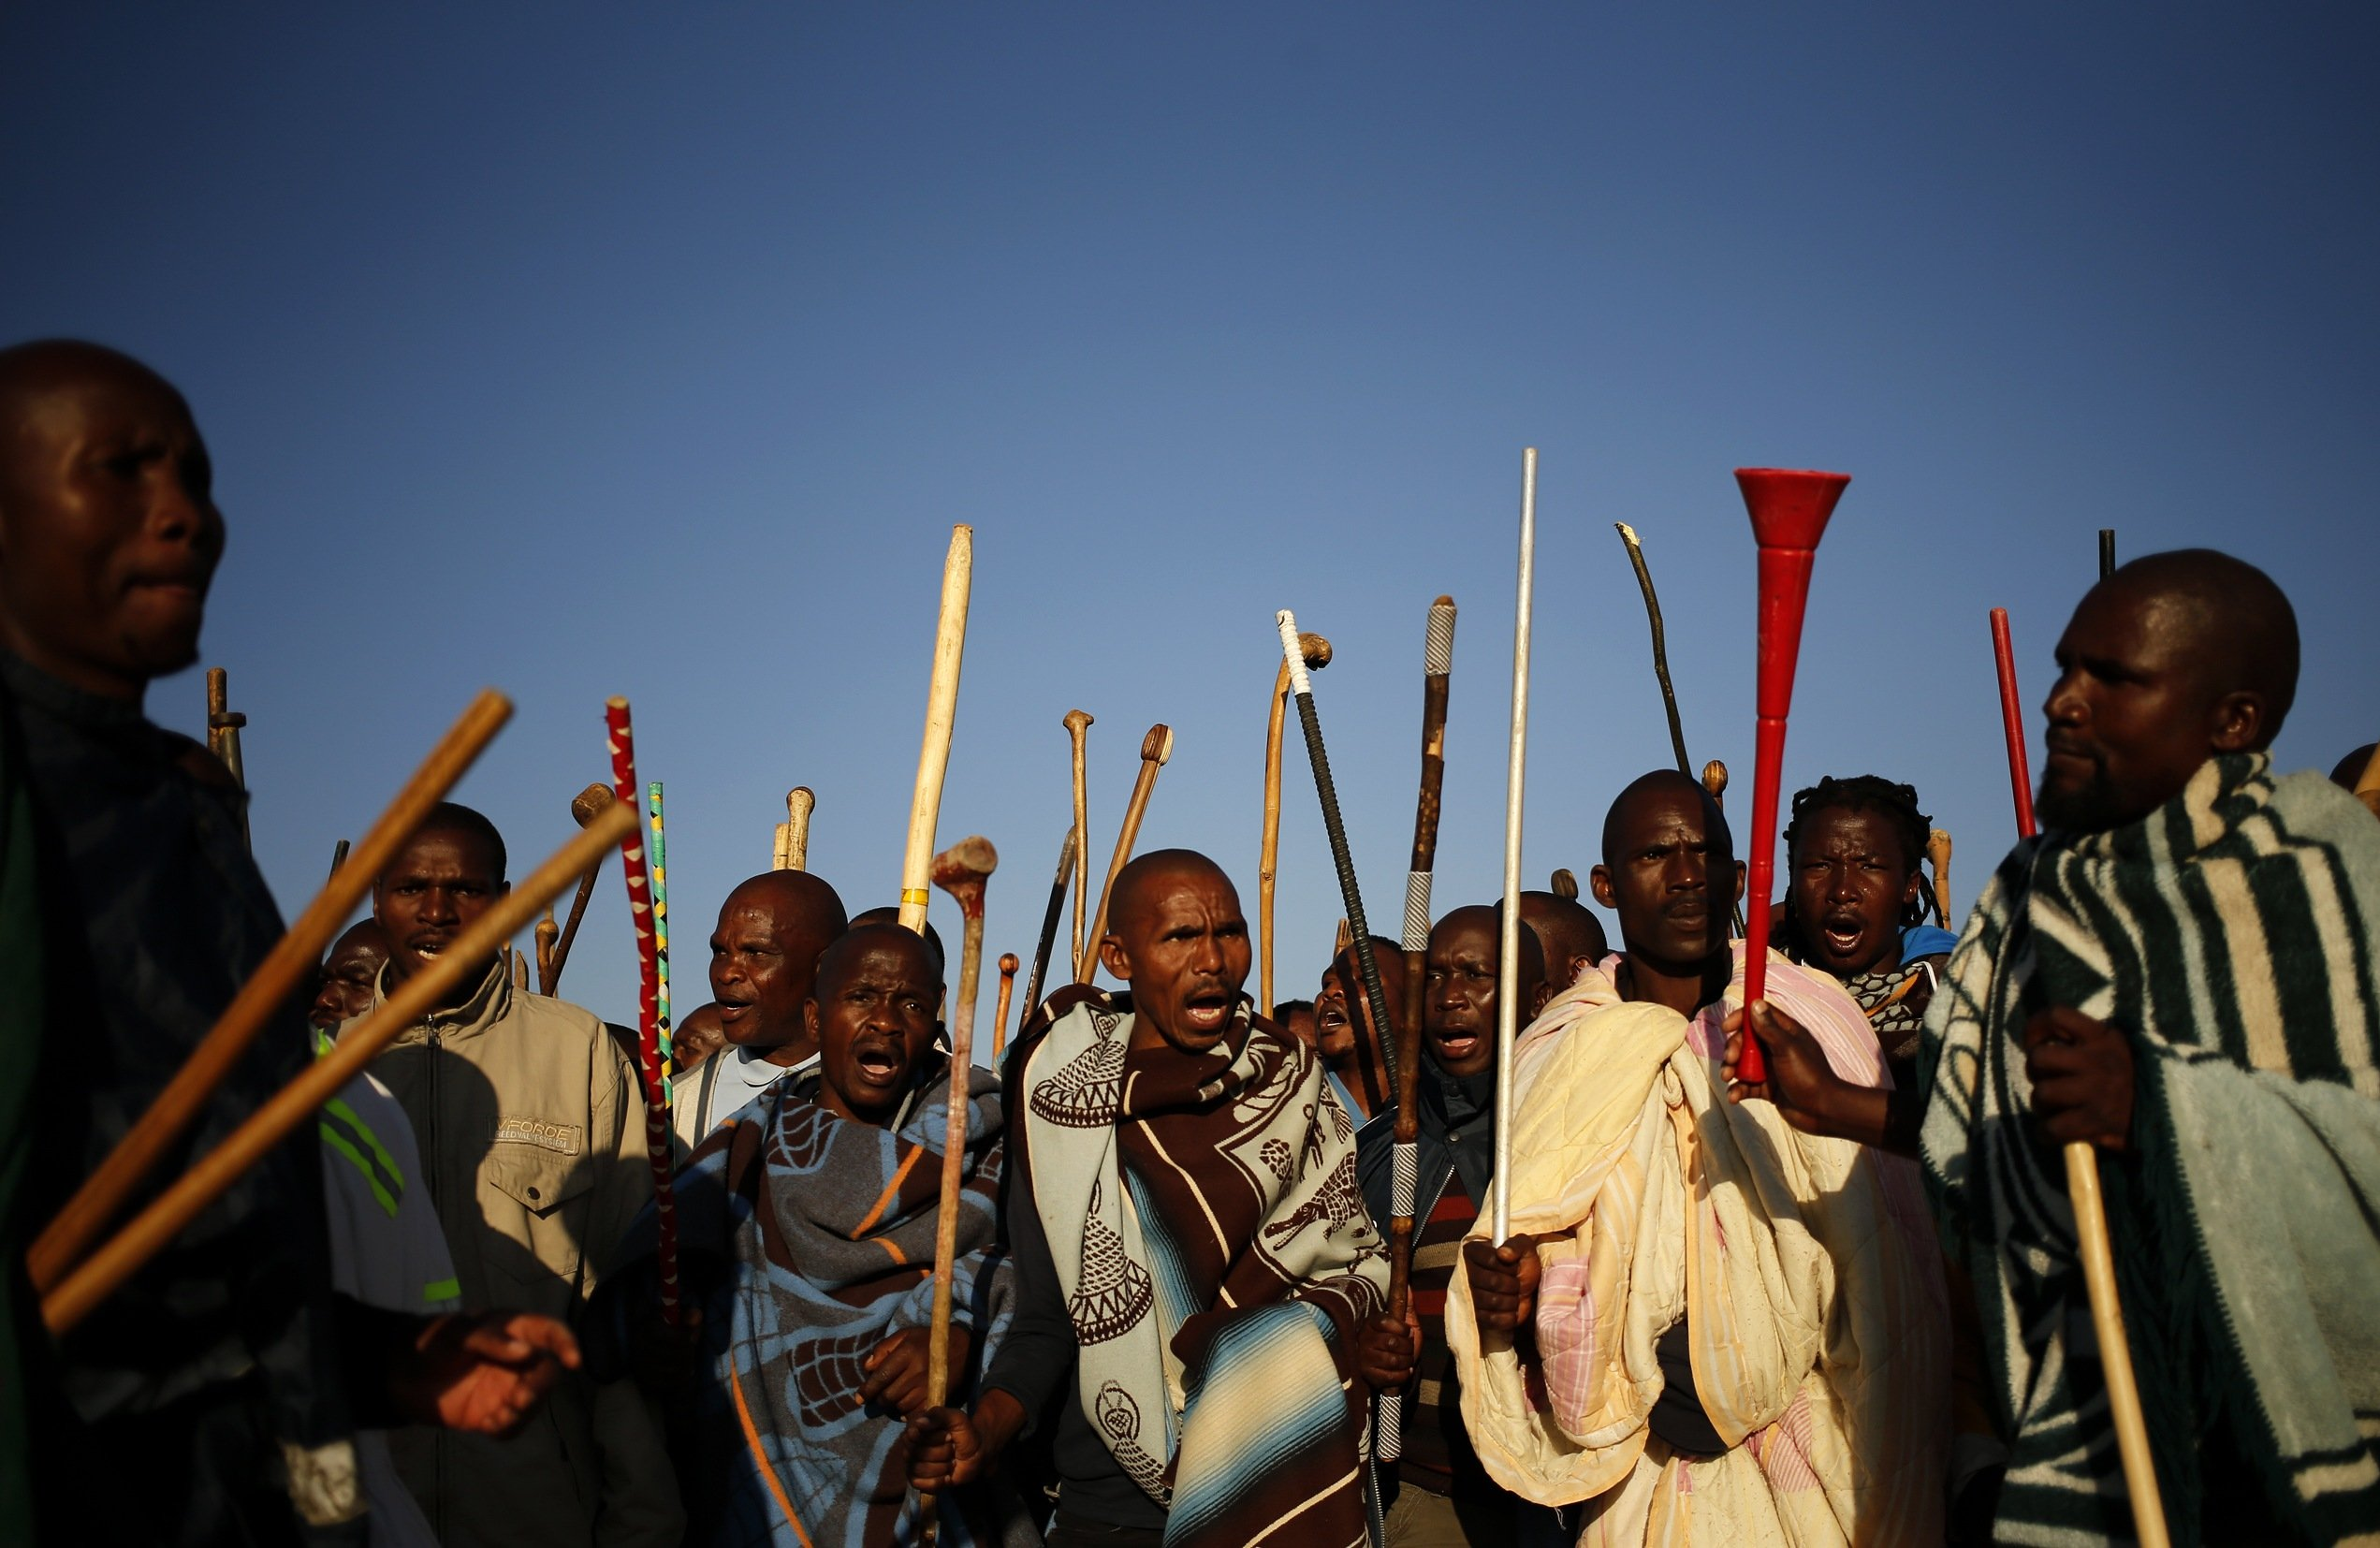 Miners on strike chant slogans as they march in Nkaneng township outside the Lonmin mine in Rustenburg, South Africa on May 14, 2014.